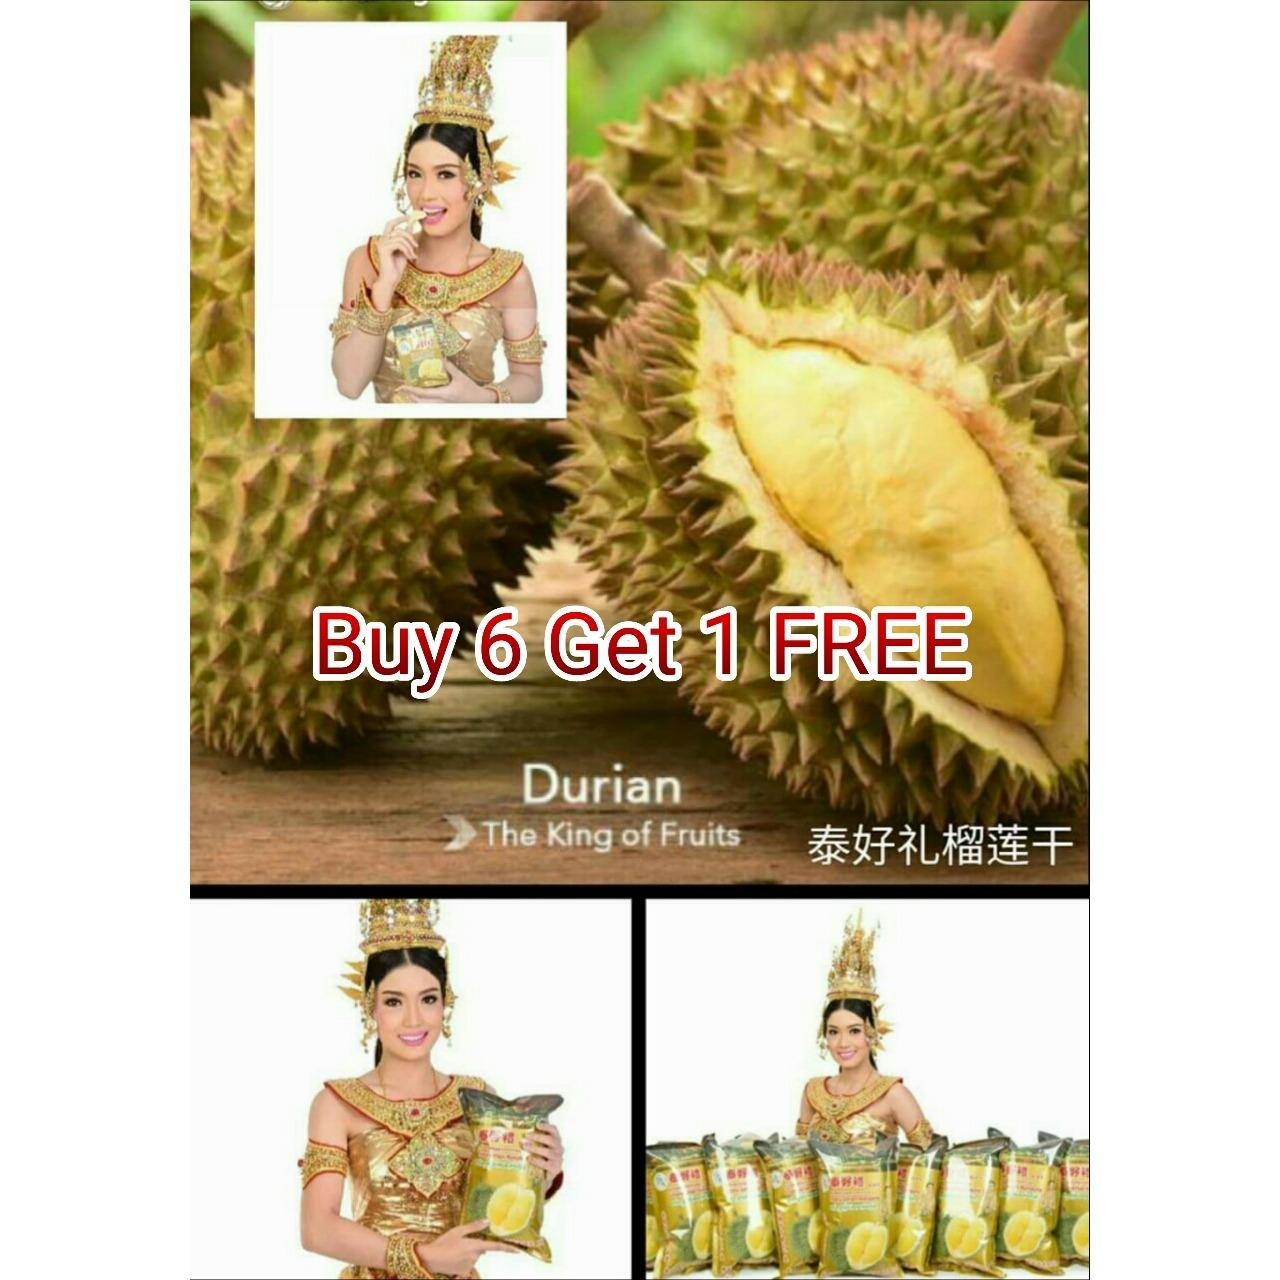 Durian Freeze Thai Hao Li Buy 6 Get 1 Free By Healthyliving123.